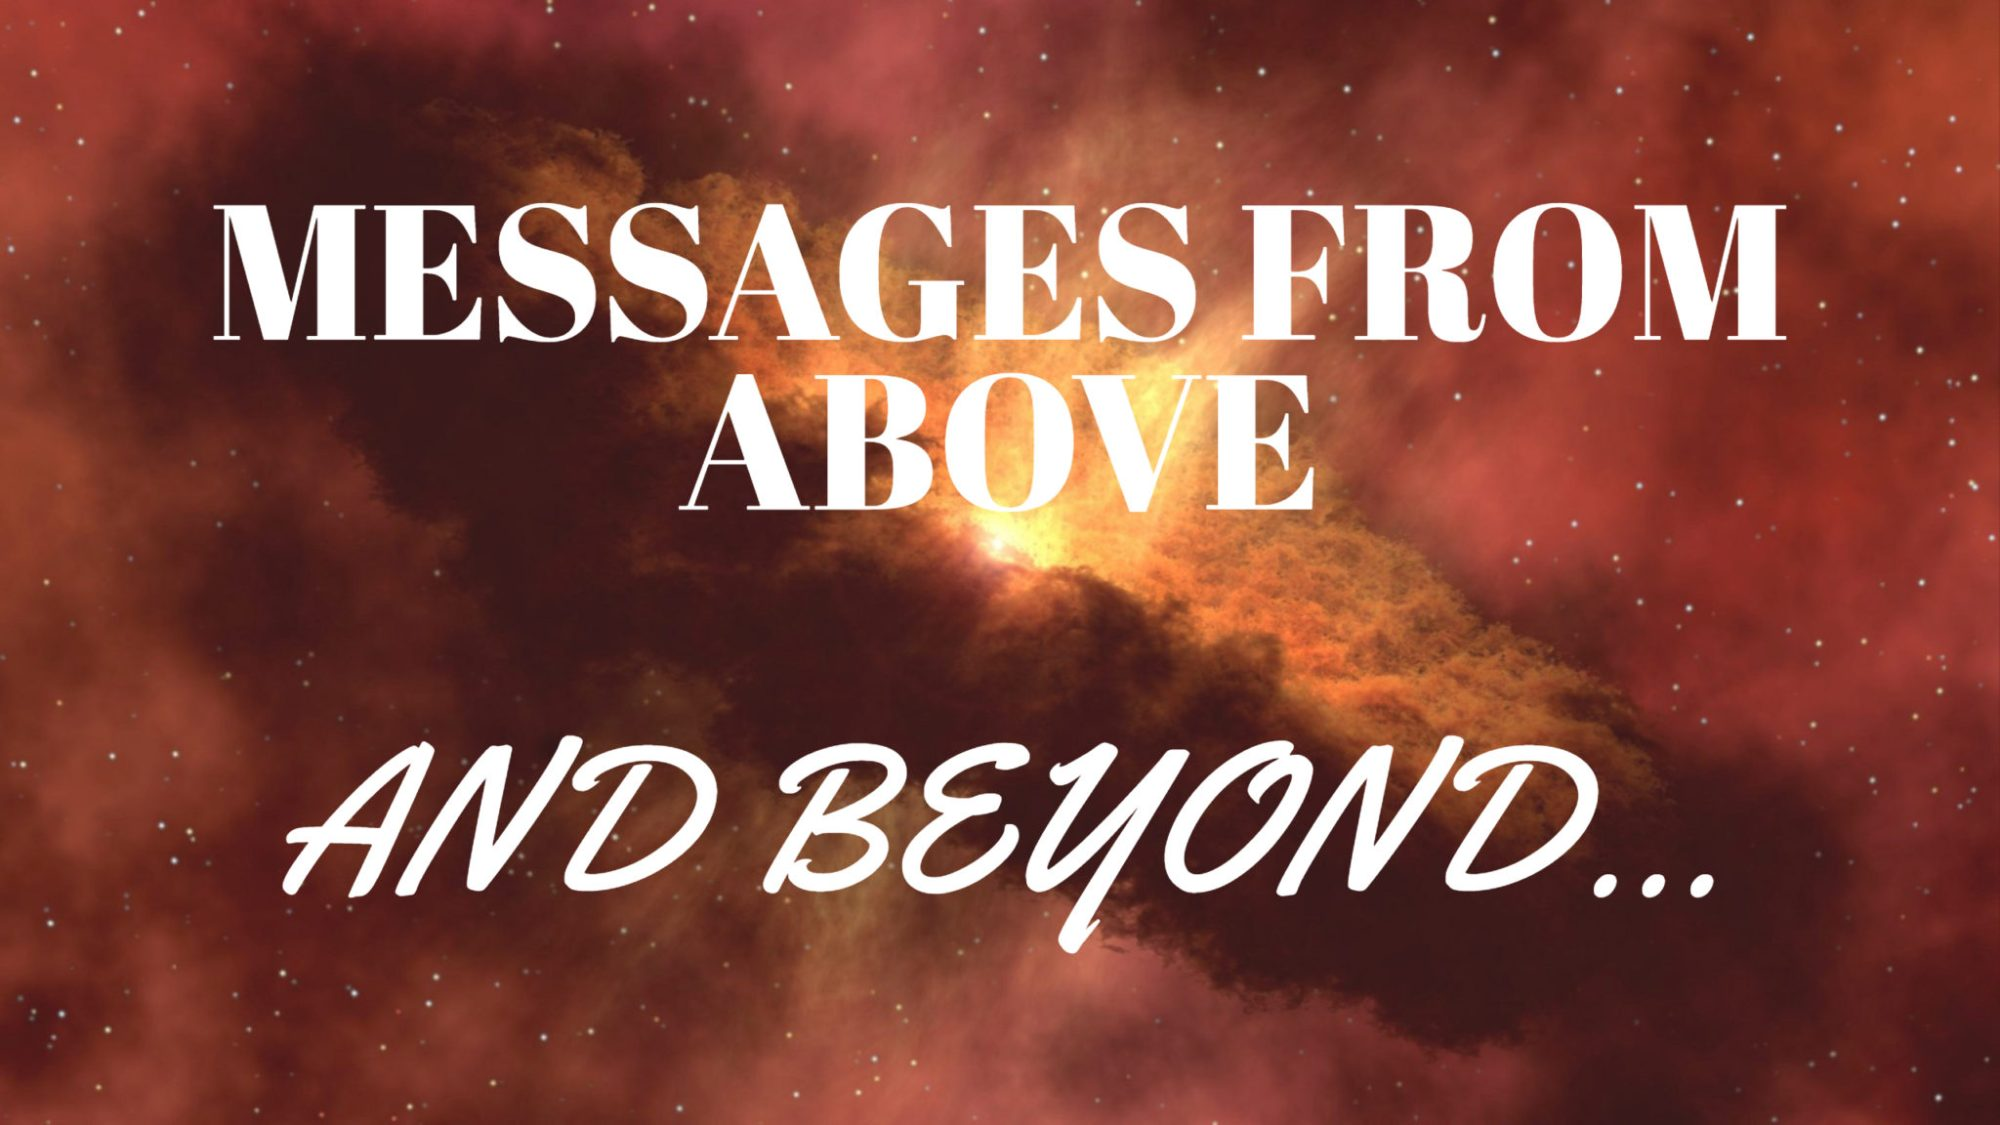 MESSAGES FROM ABOVE (1)